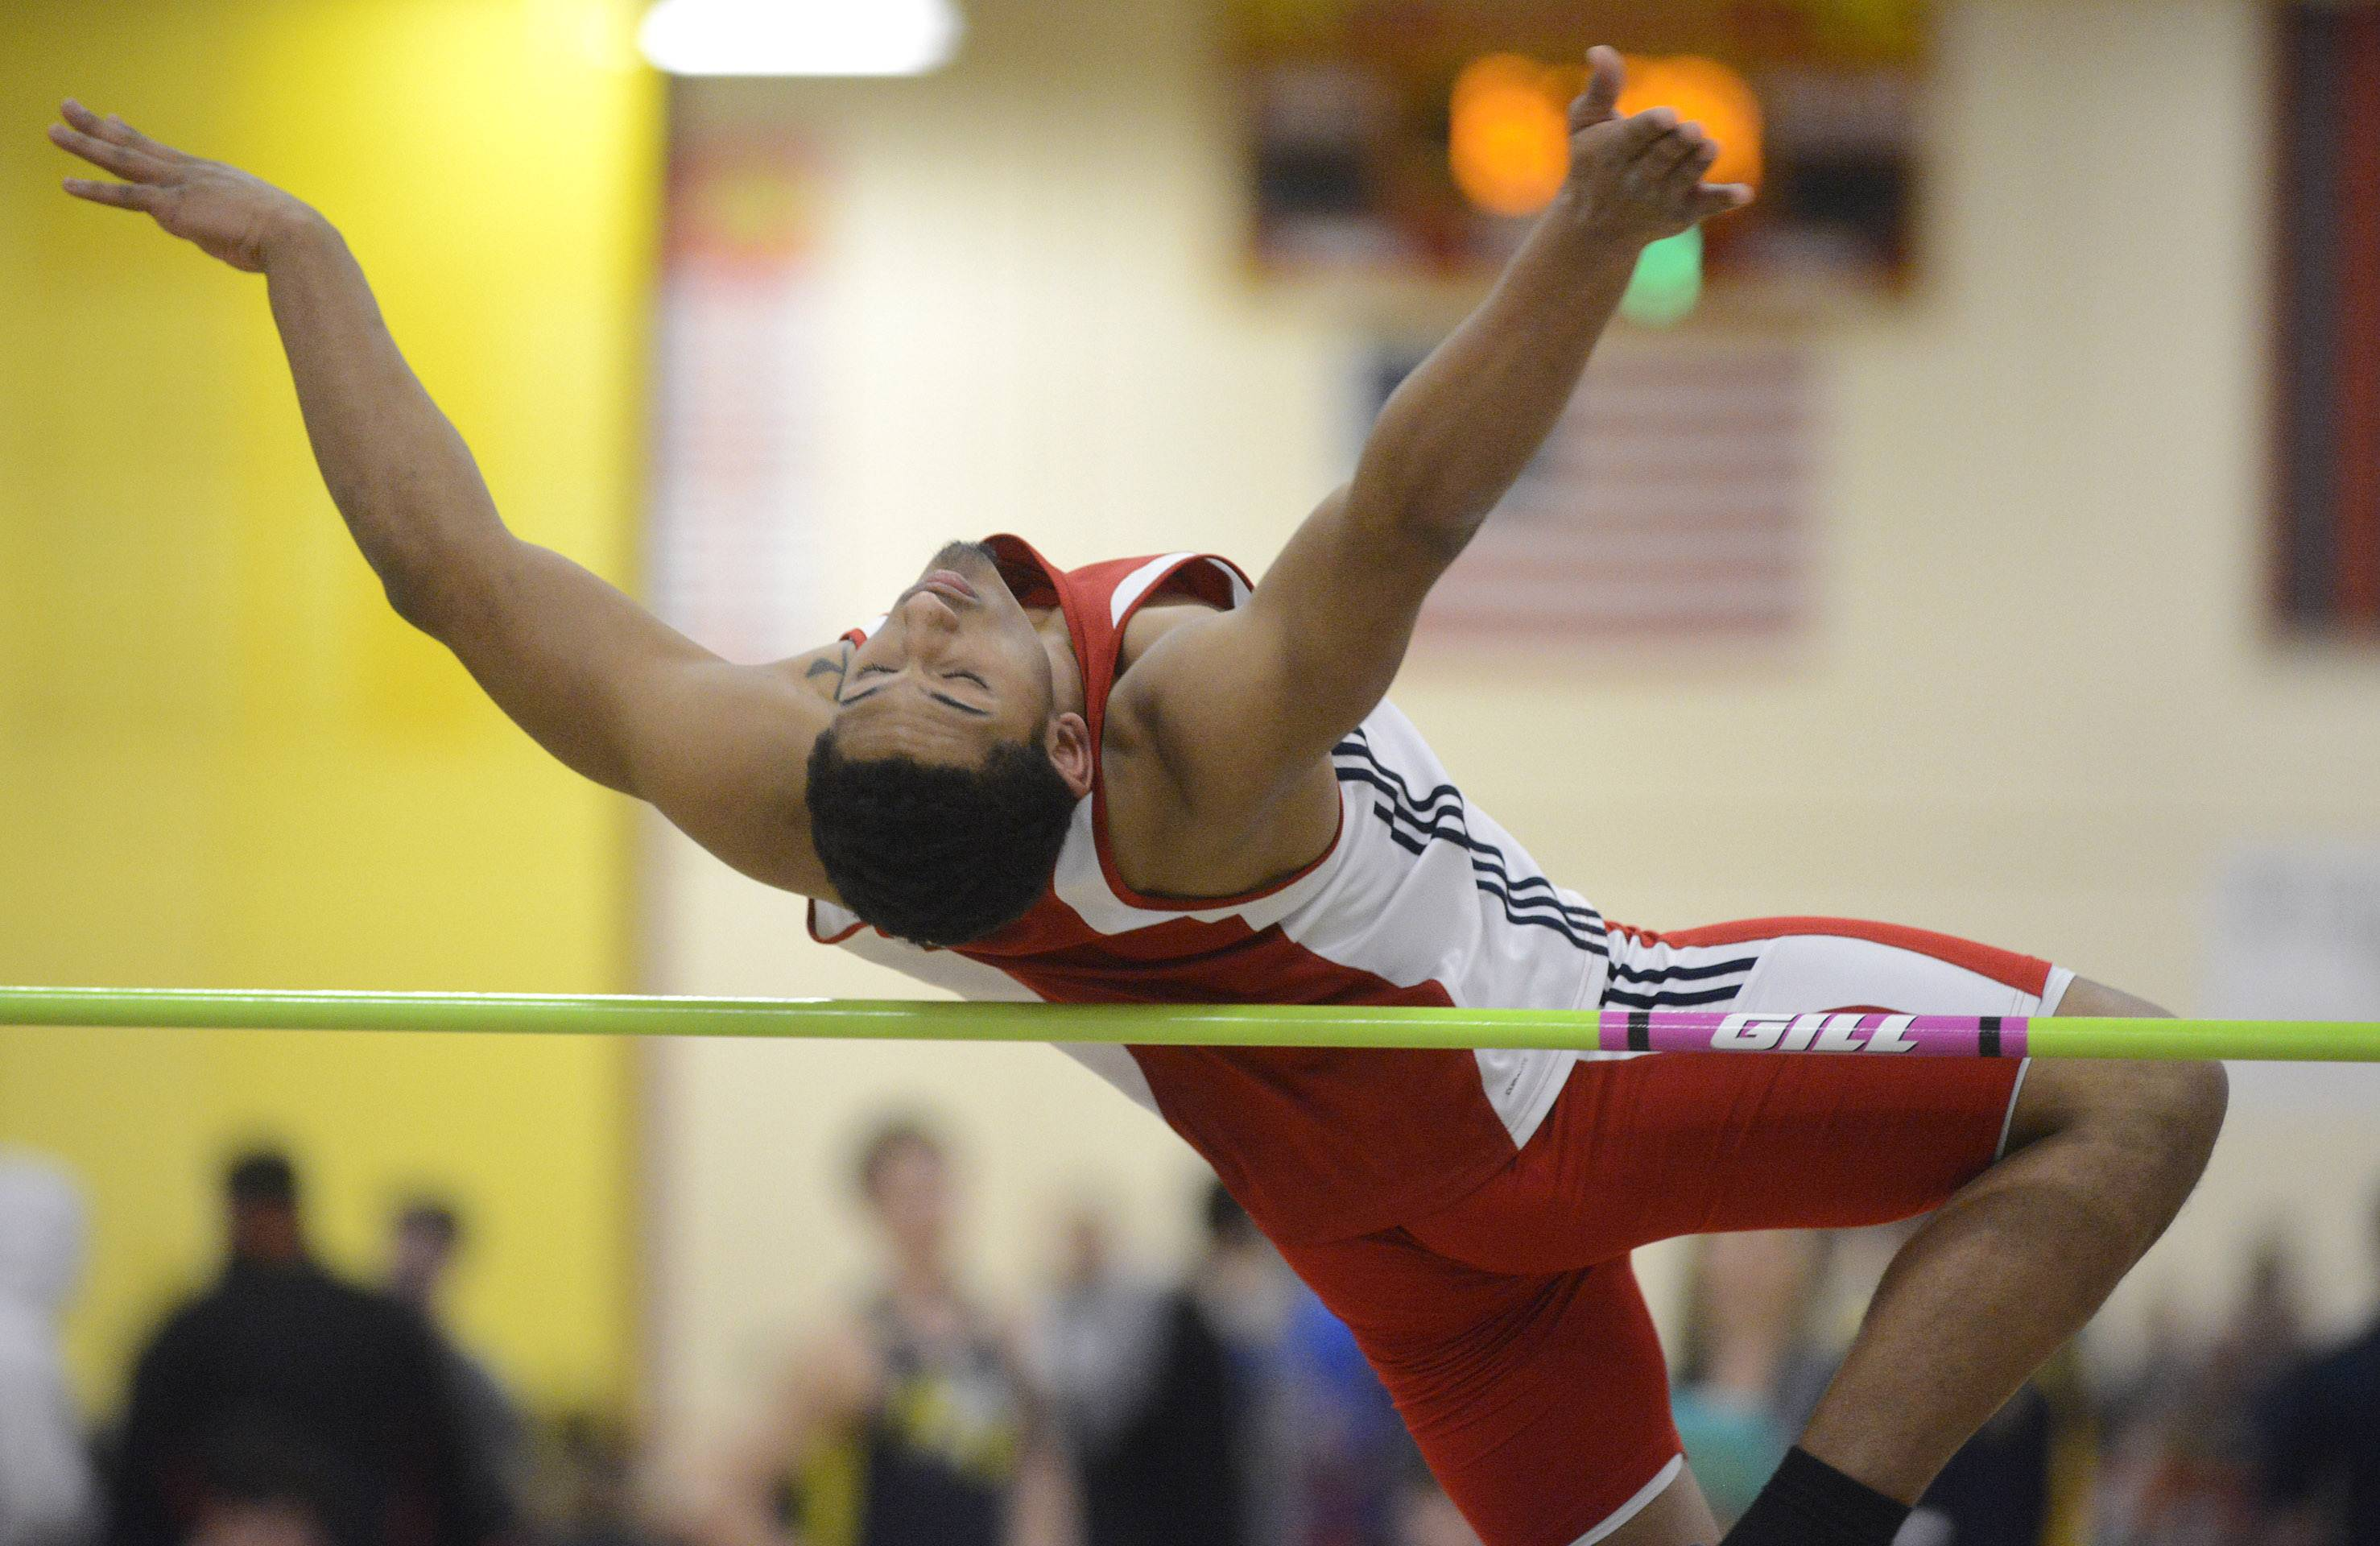 South Elgin's Dalton Garland competes in the high jump at the Upstate Eight Conference indoor meet in Batavia last month.